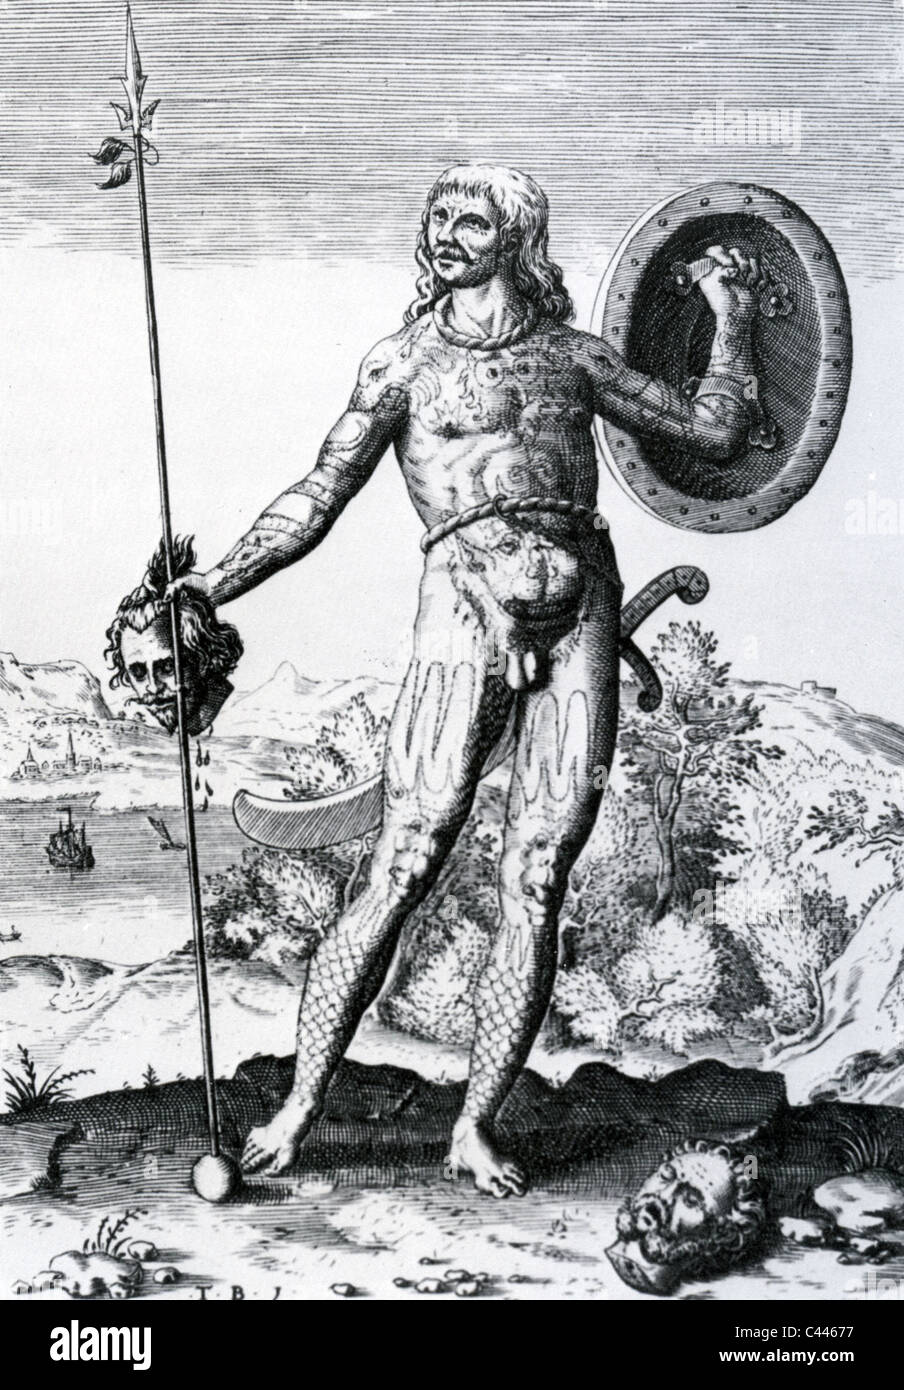 PICT  SCOTTISH WARRIOR as shown in a 16th century illustration - Stock Image